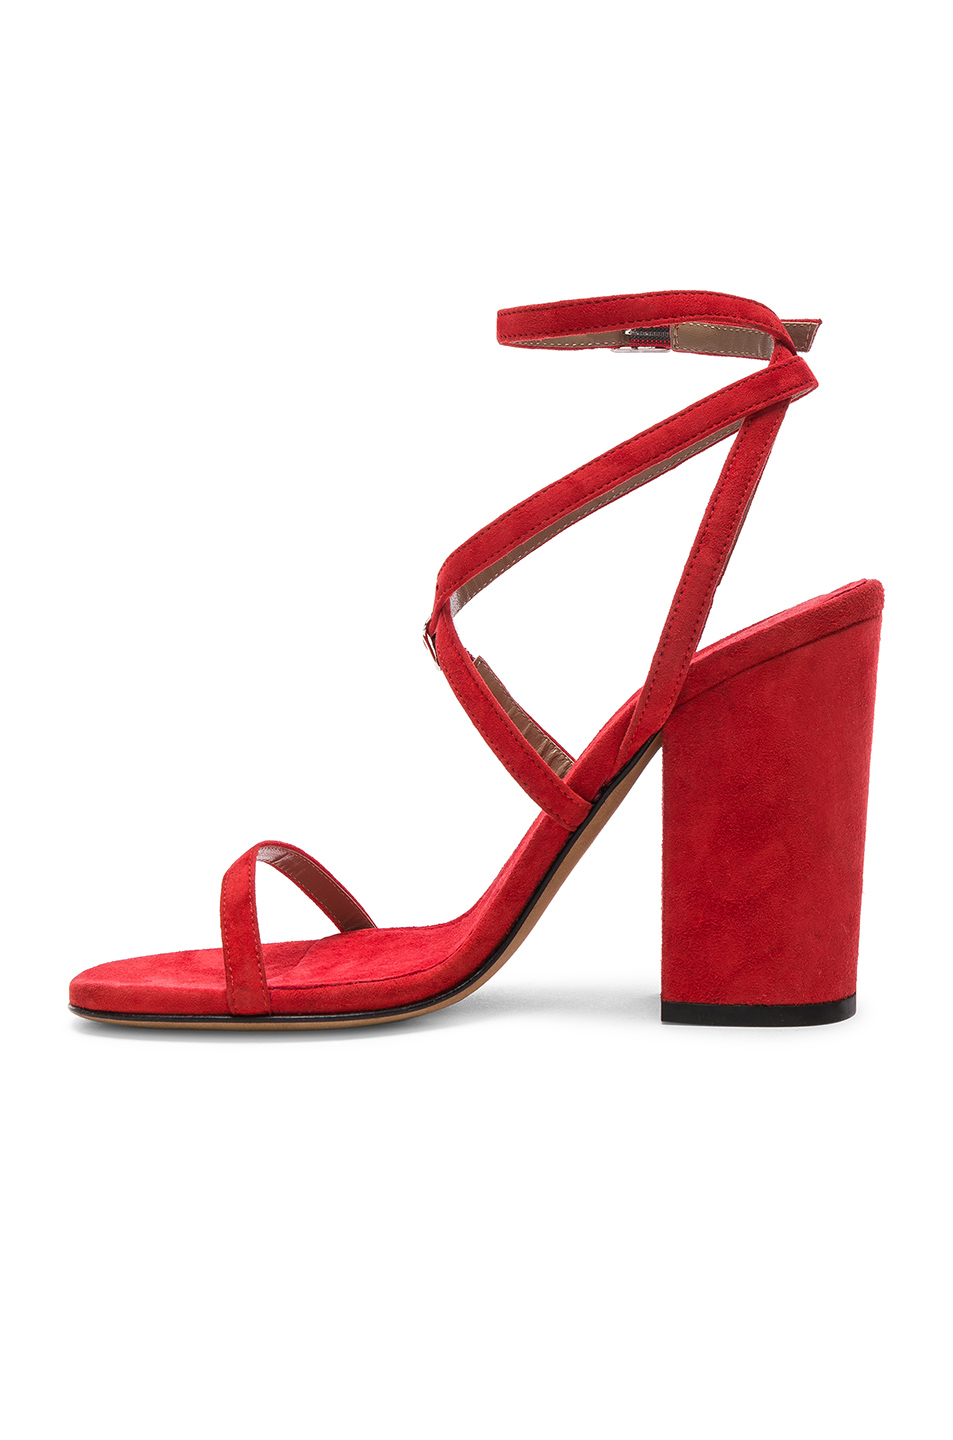 dbd3d72acc4 Buy Original ALUMNAE Strappy Ankle Wrap Sandals at Indonesia